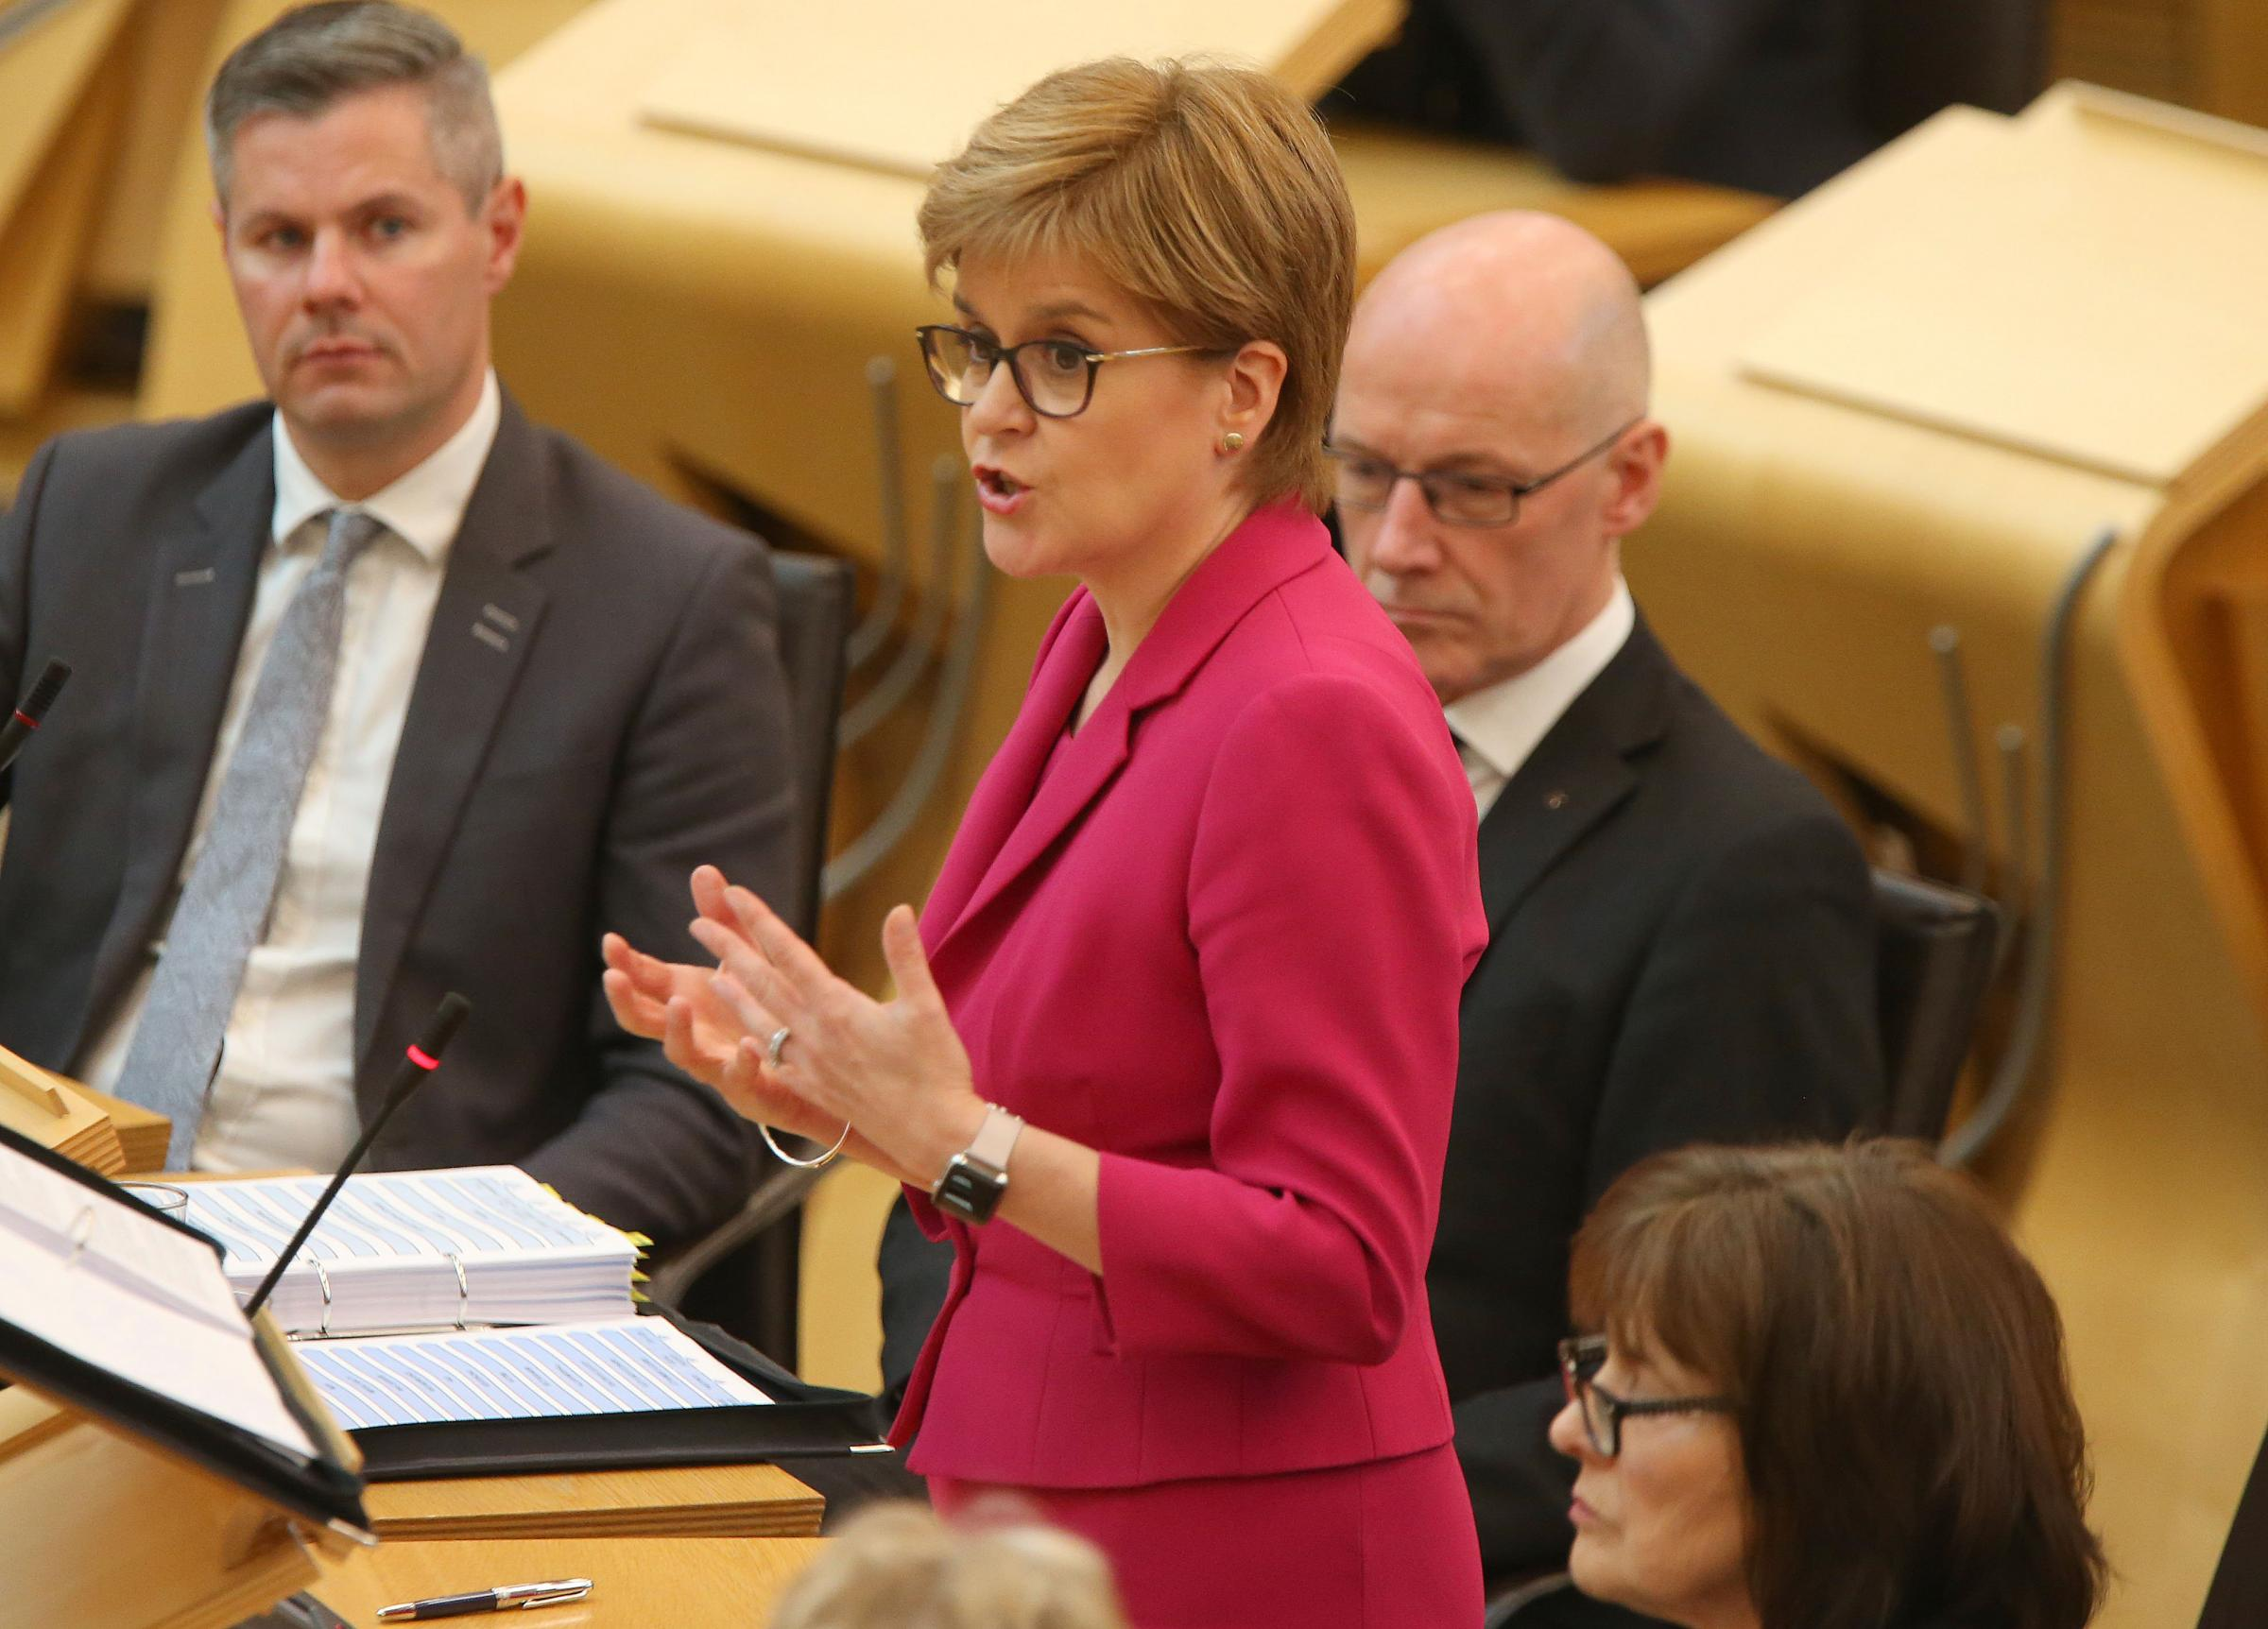 Nicola Sturgeon told 'heads should roll' over Sick Kids hospital delay